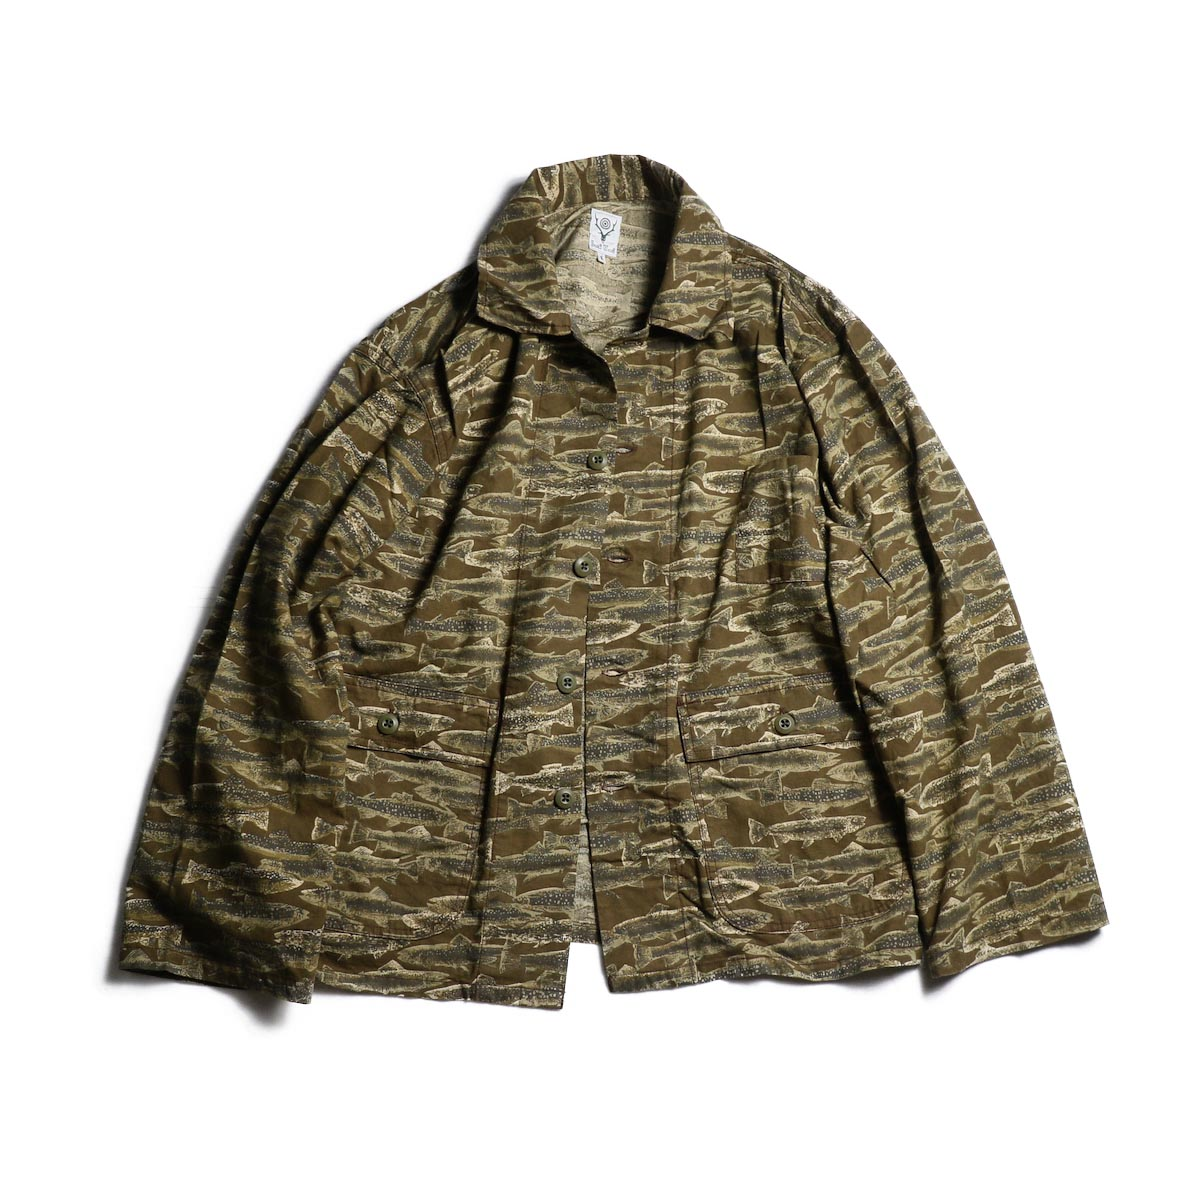 SOUTH2 WEST8 / Hunting Shirt - Printed Flannel / Camouflage (Trout)